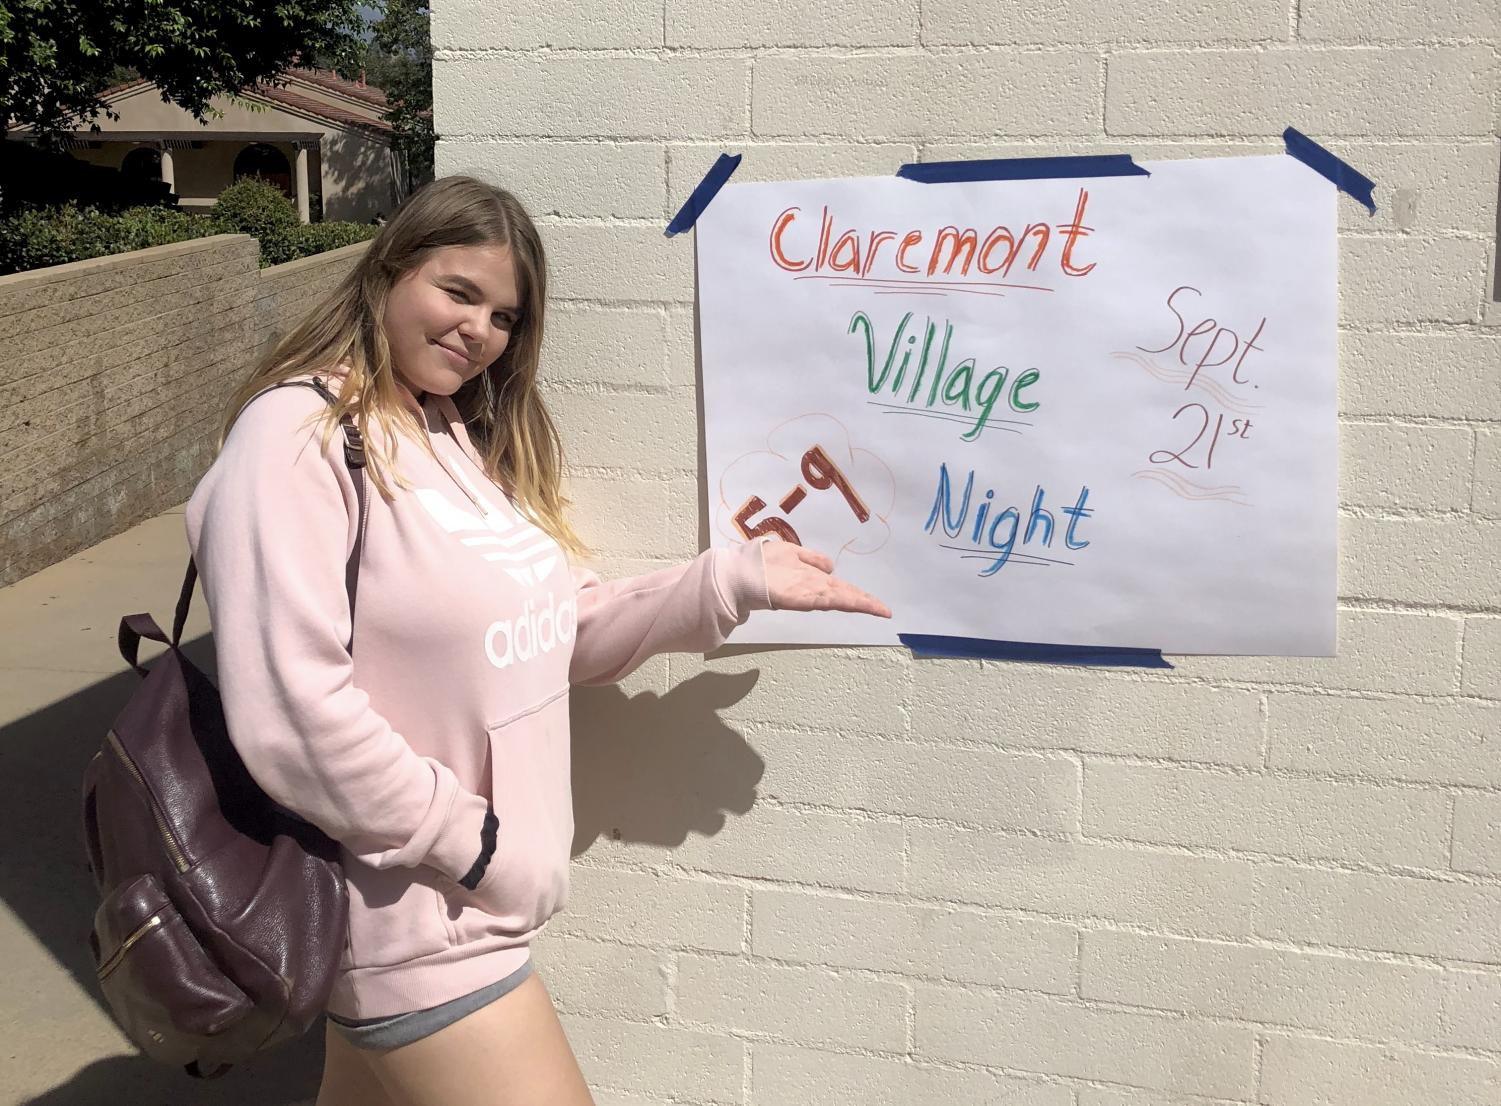 Maria Shevchuk ('19) looks forward to attending Claremont Village Night. Graphic Courtesy to Emily Stepanian